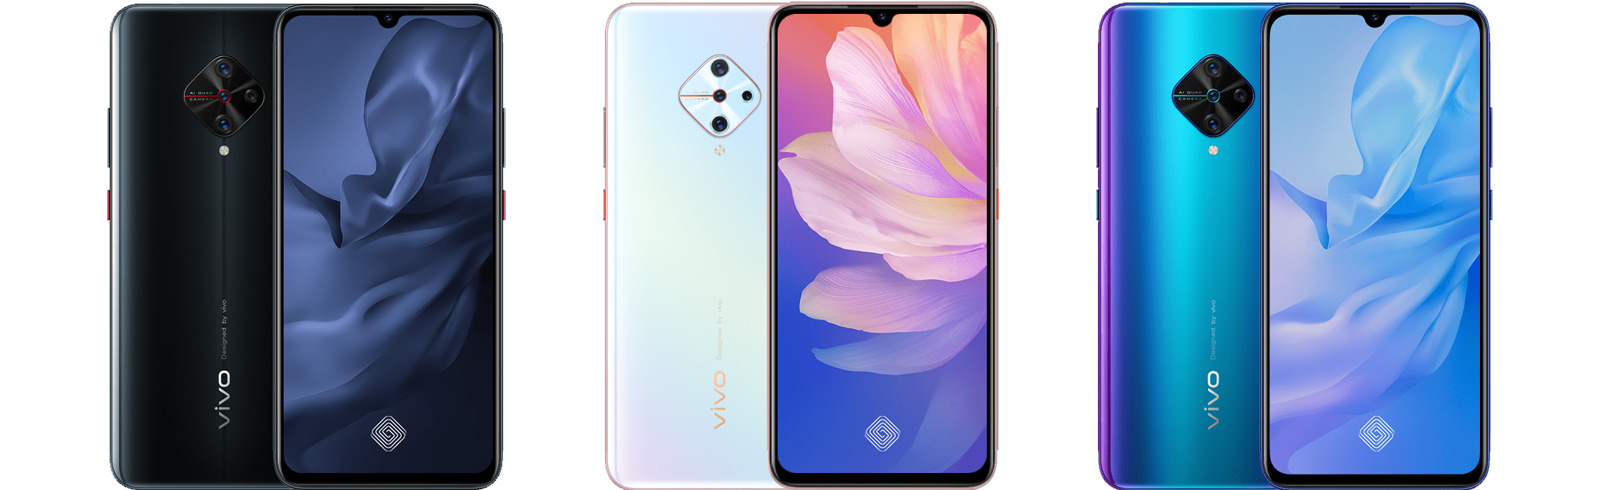 Vivo S1 Pro SD665 is launched in India for INR 20,990 (USD 242)